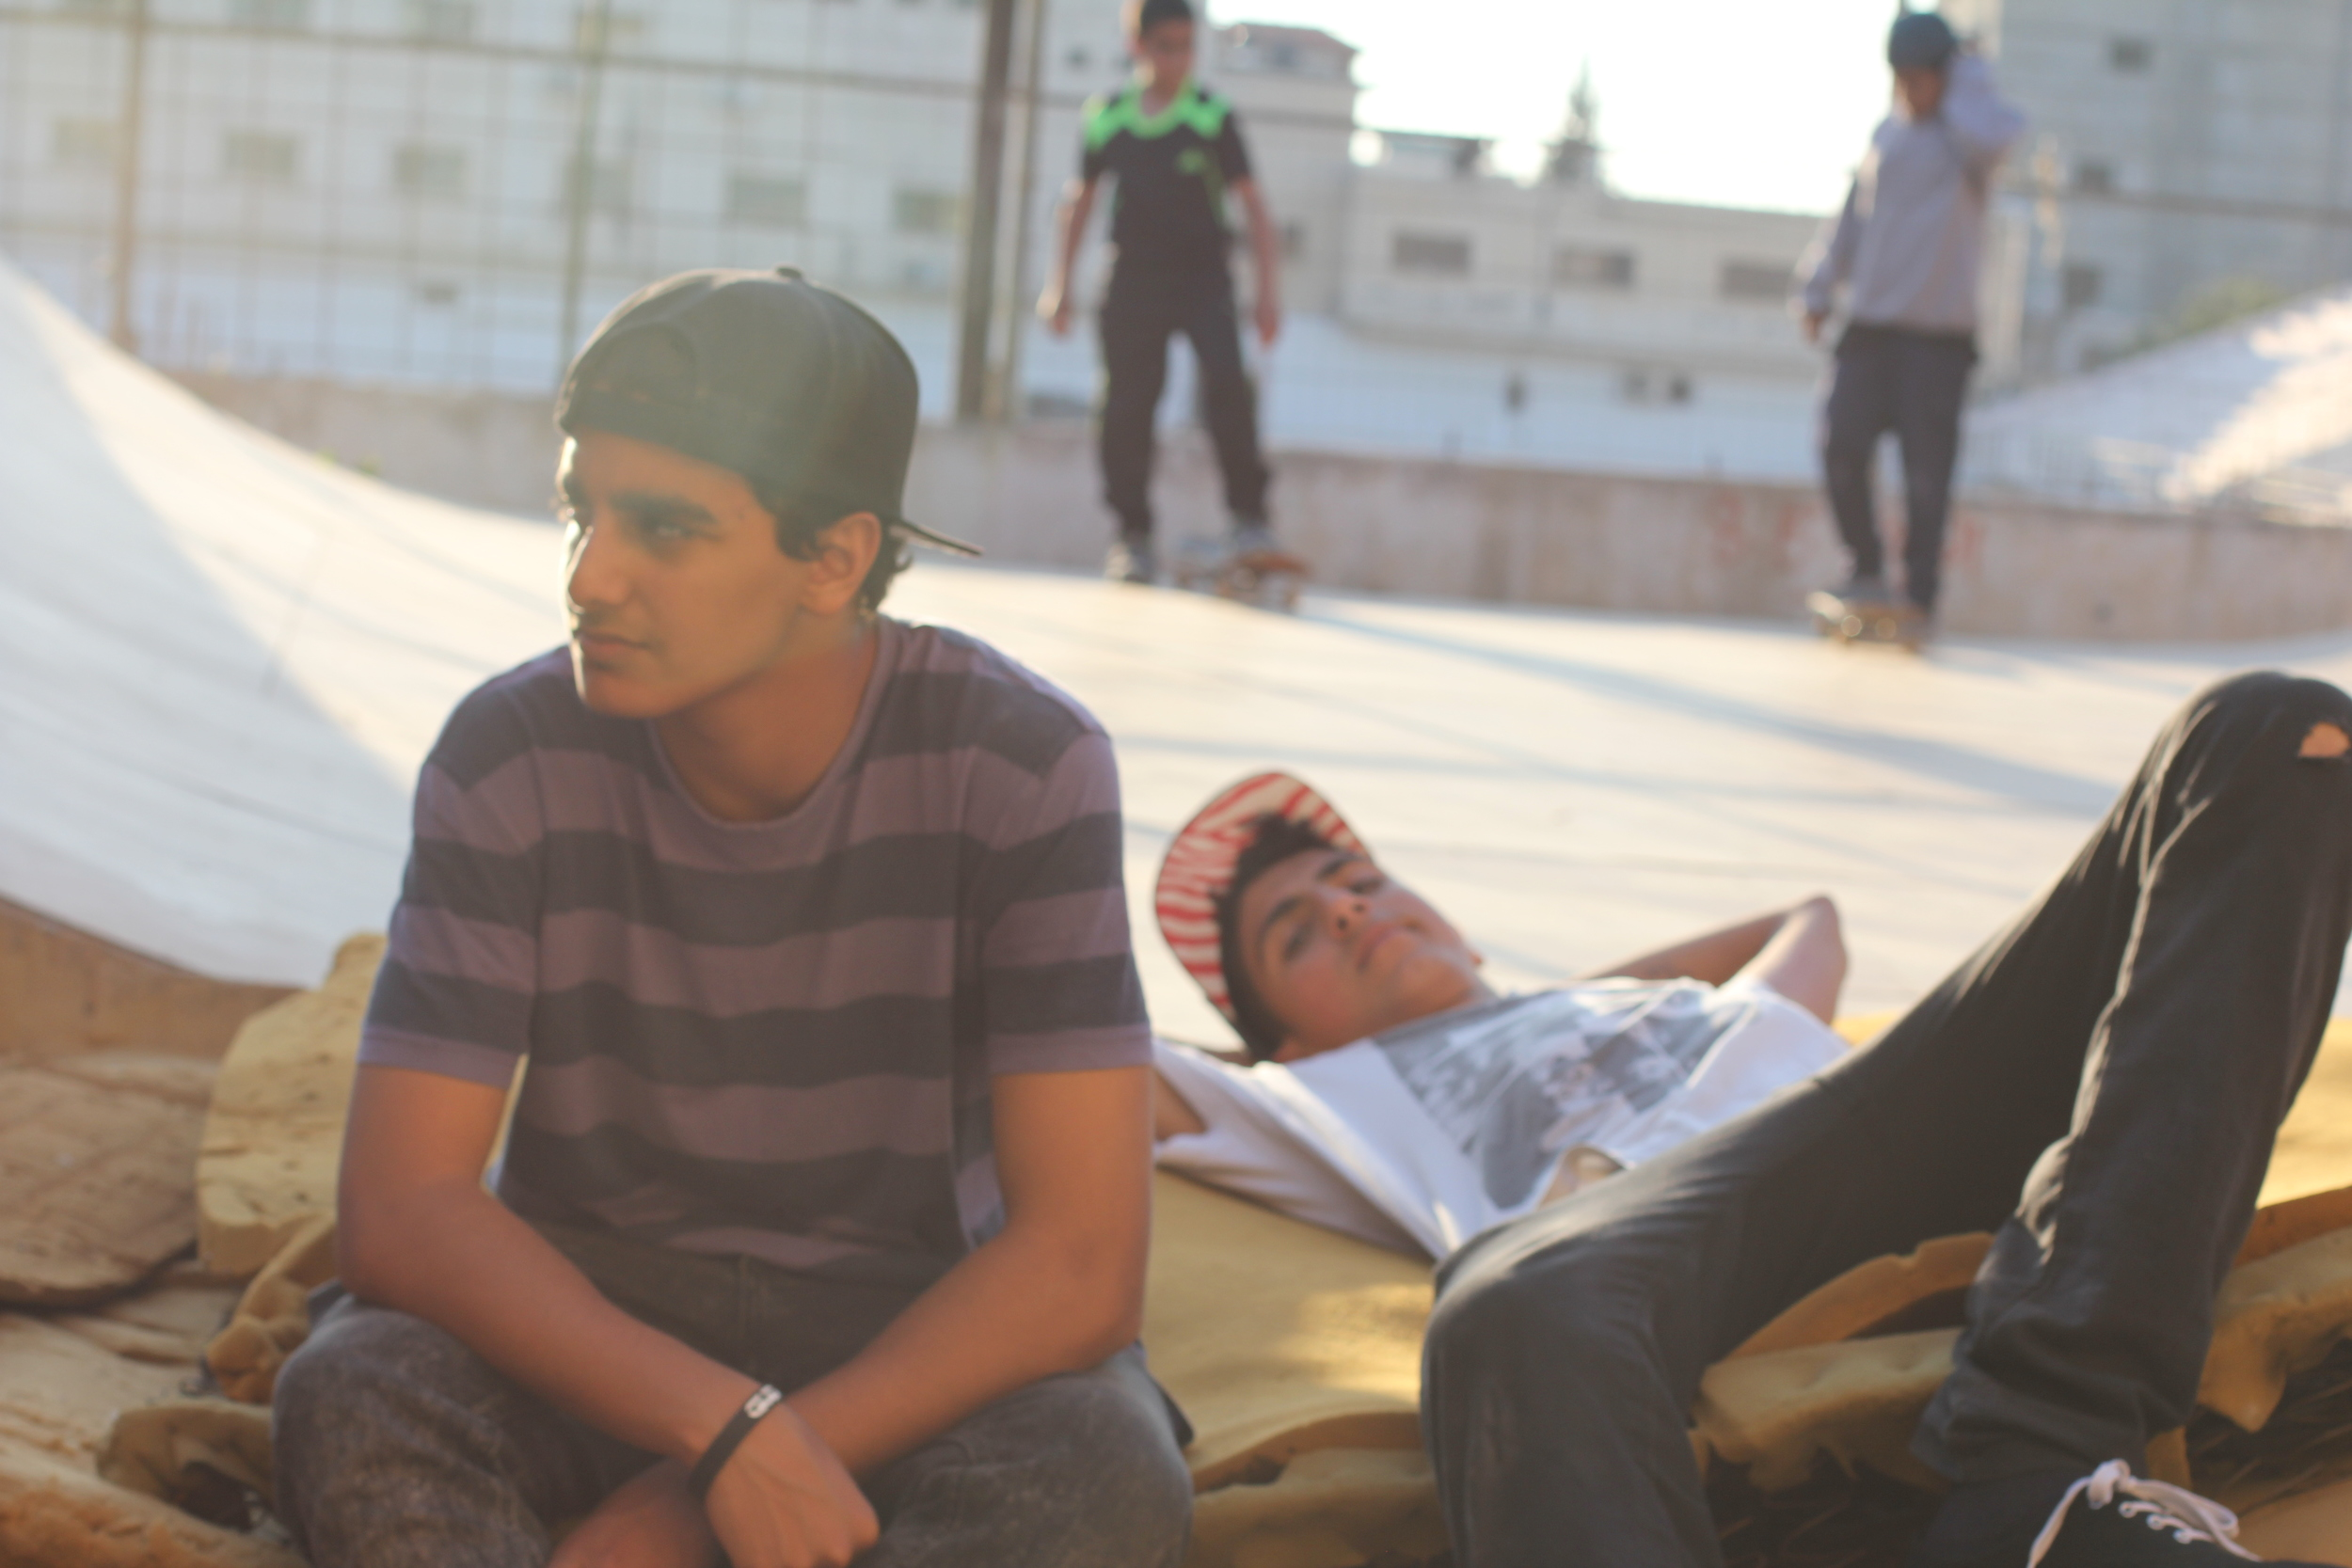 Chilling with Abdullah and Eihab at the ramp in Qalqilya.